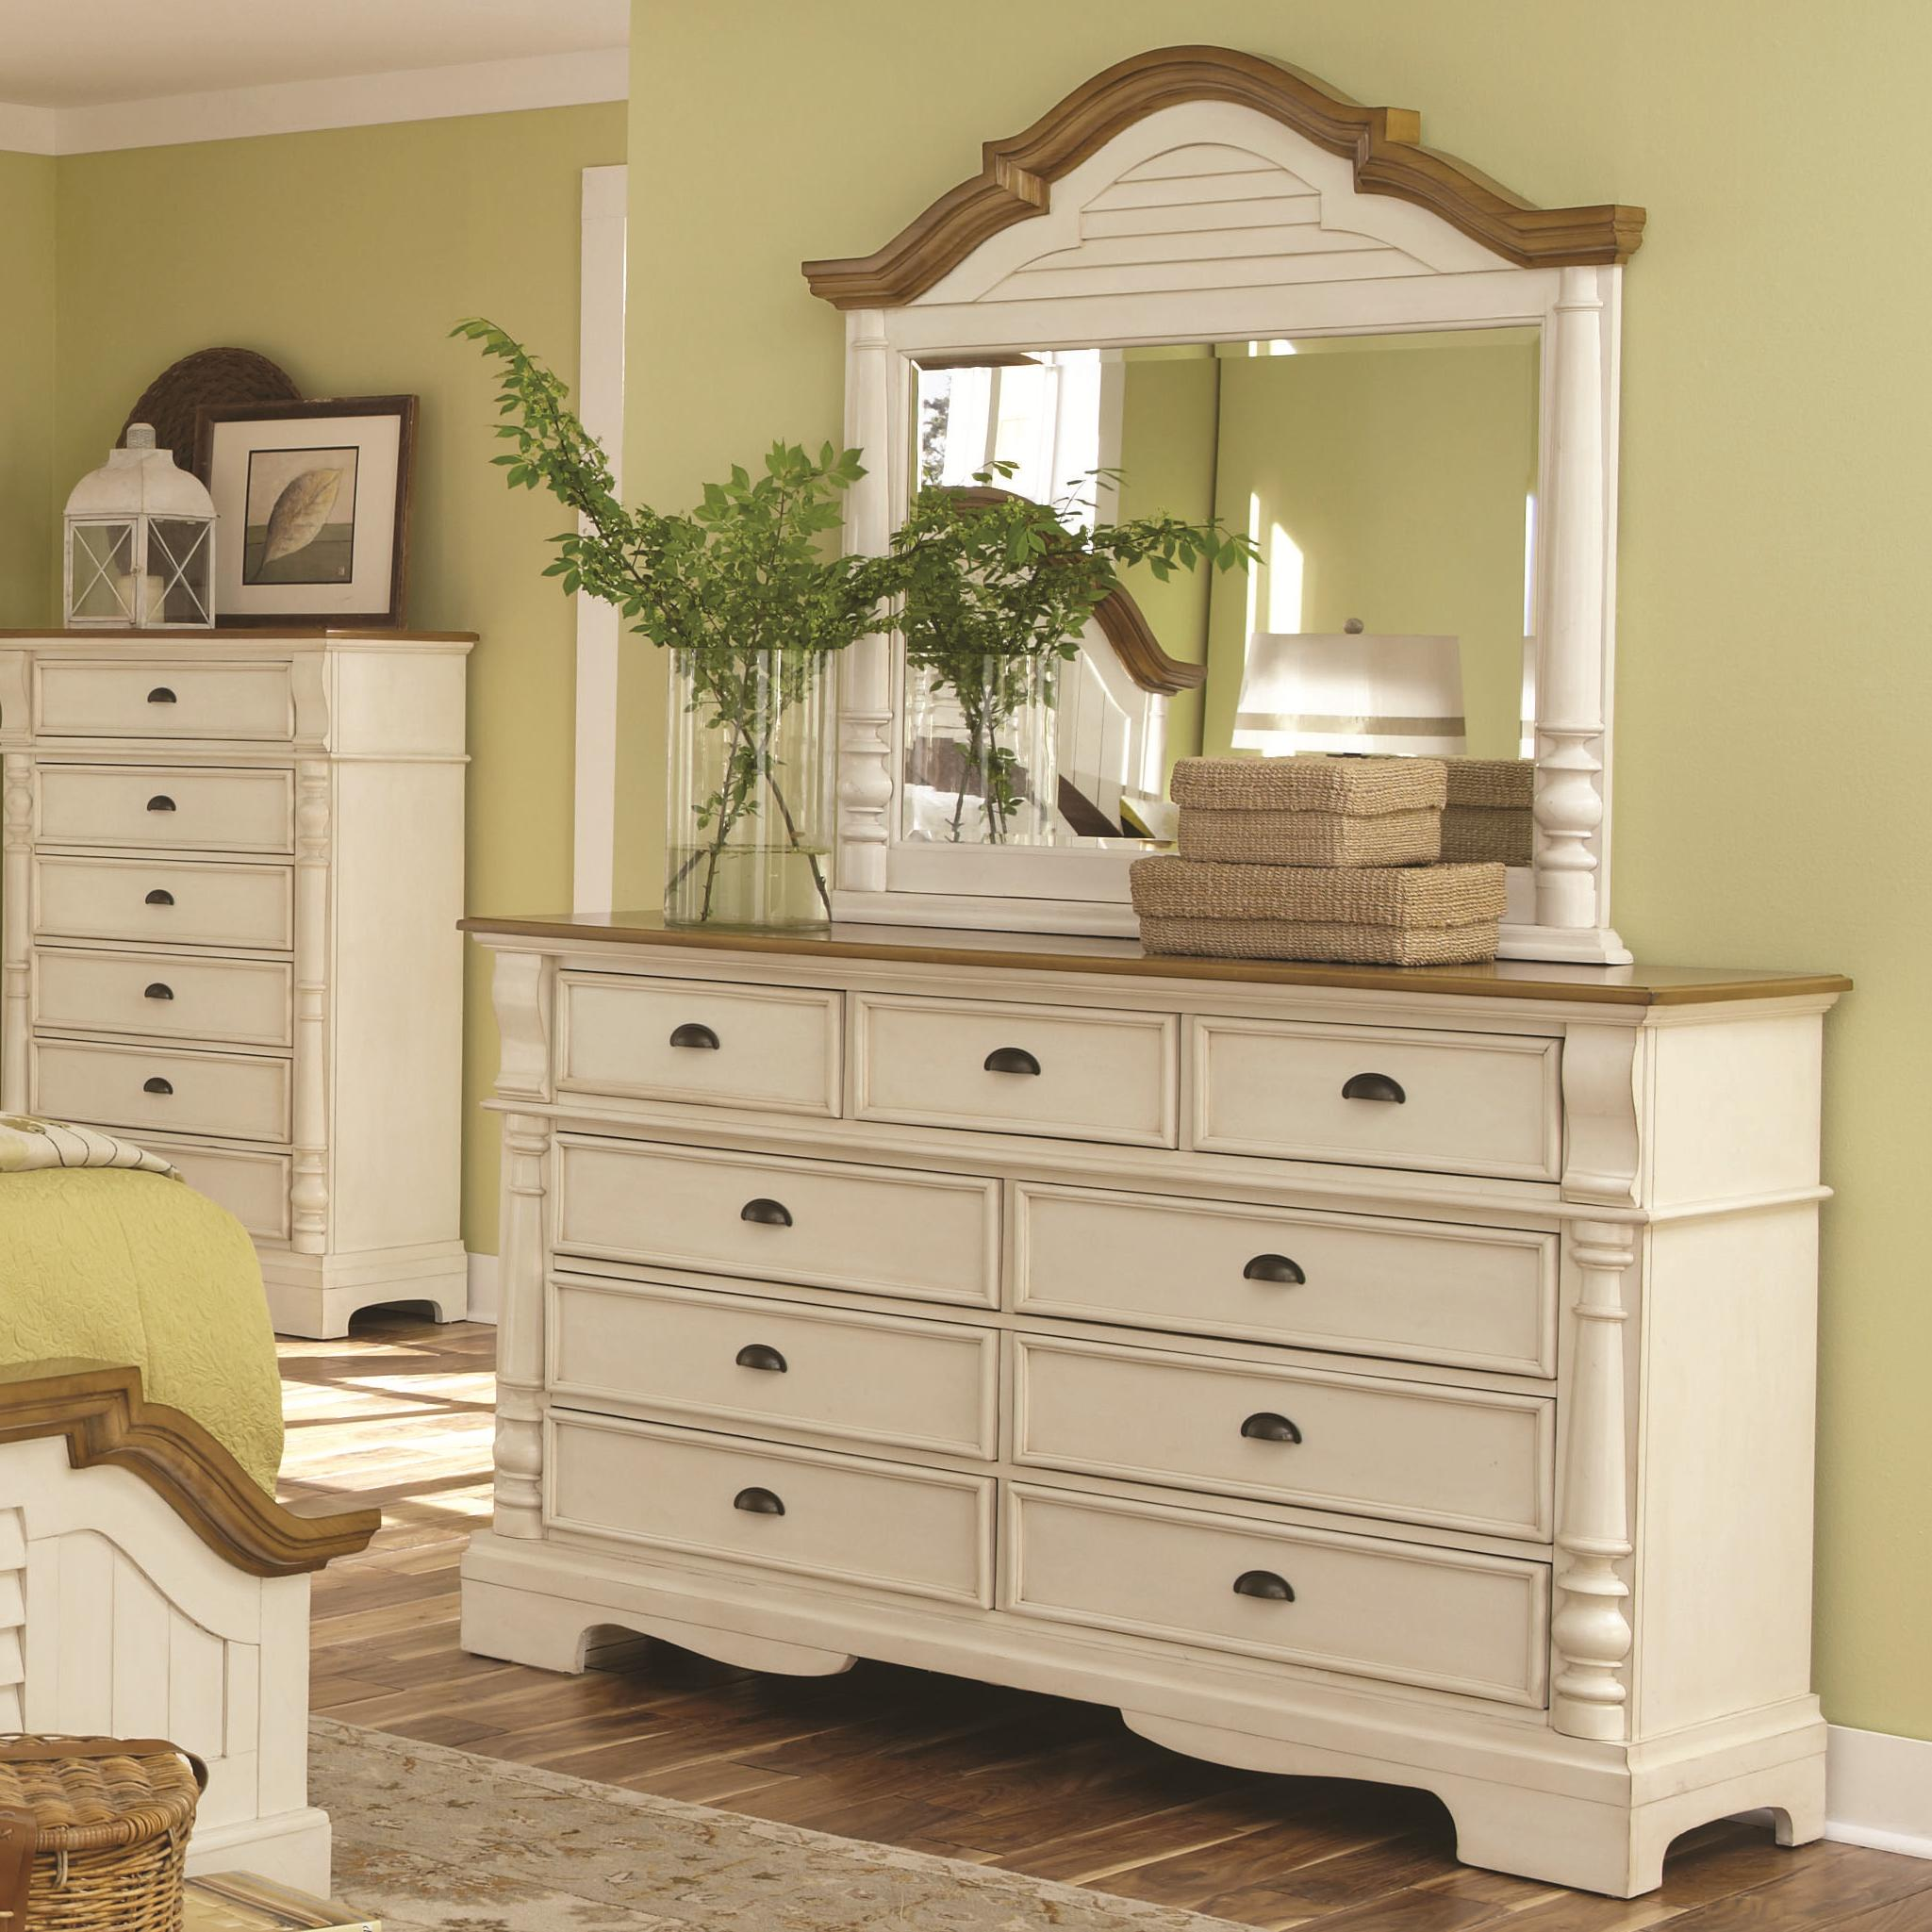 Coaster Oleta Dresser and Mirror Set - Item Number: 202883+4